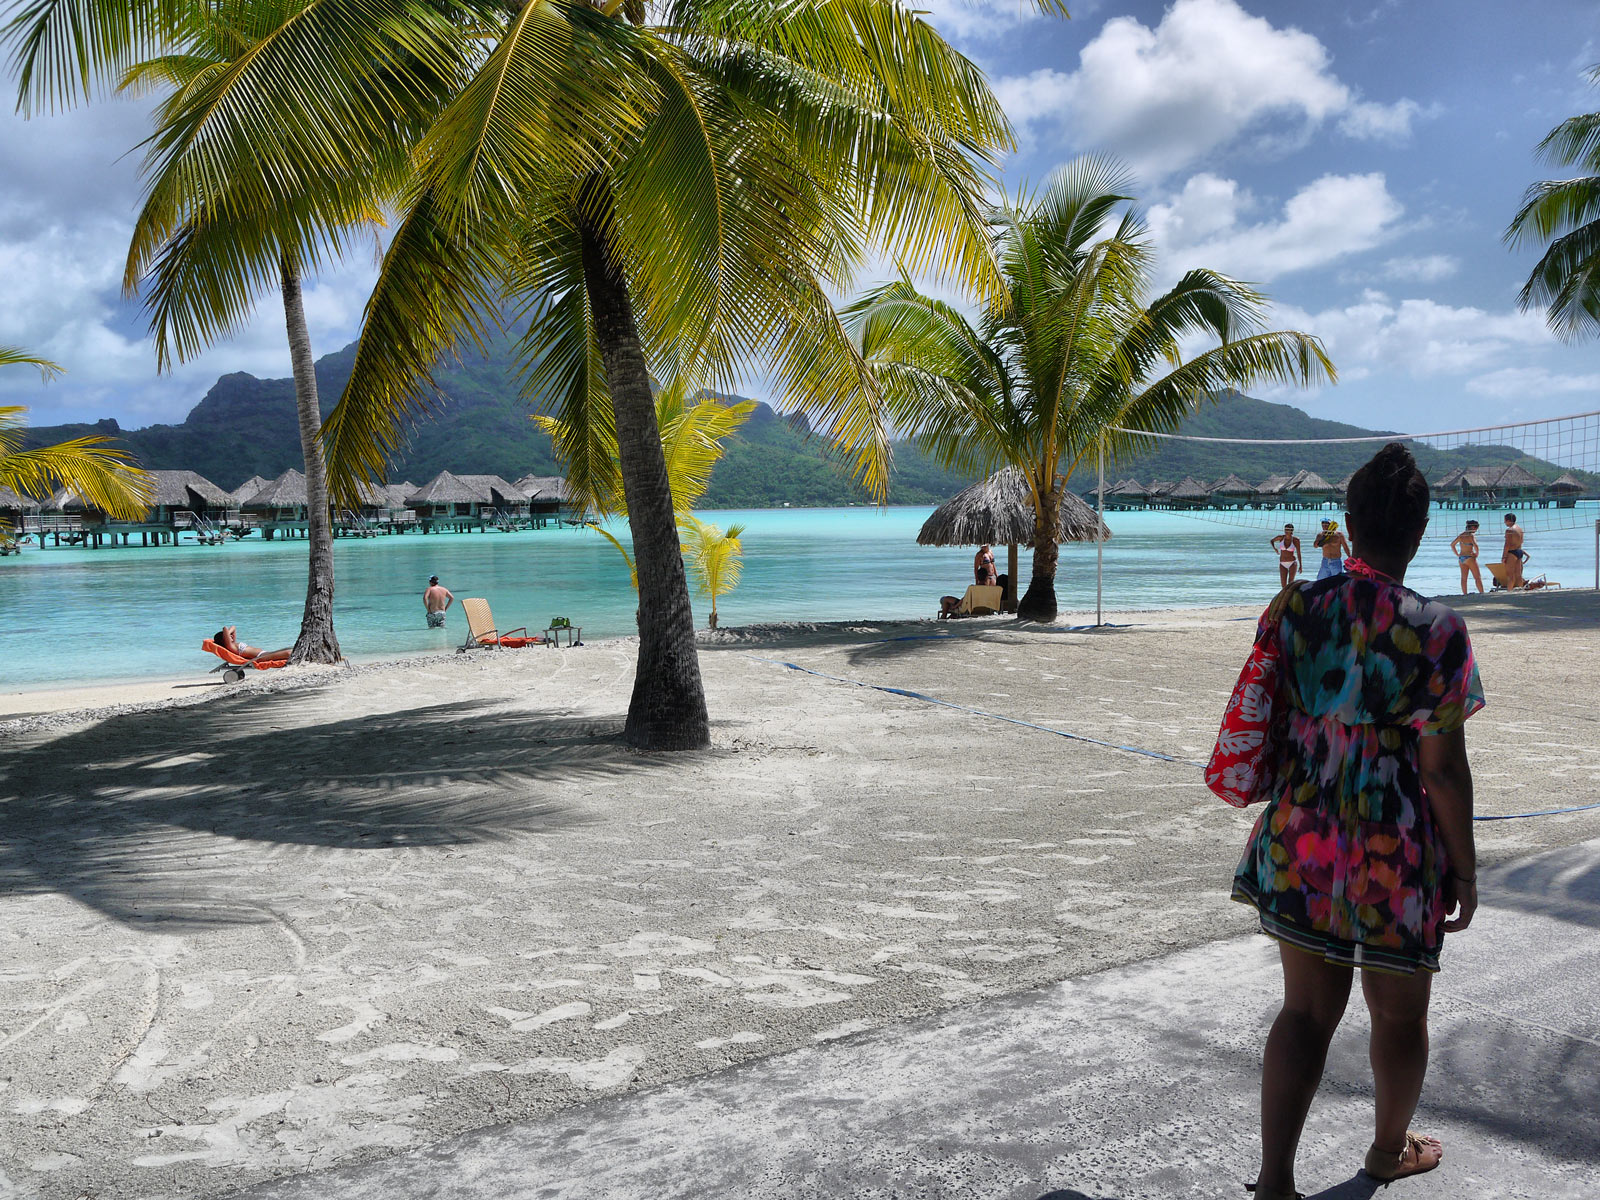 Life's a Beach: Volleyball, Sunbathing, Swimming, Strolling - Bora Bora, French Polynesia